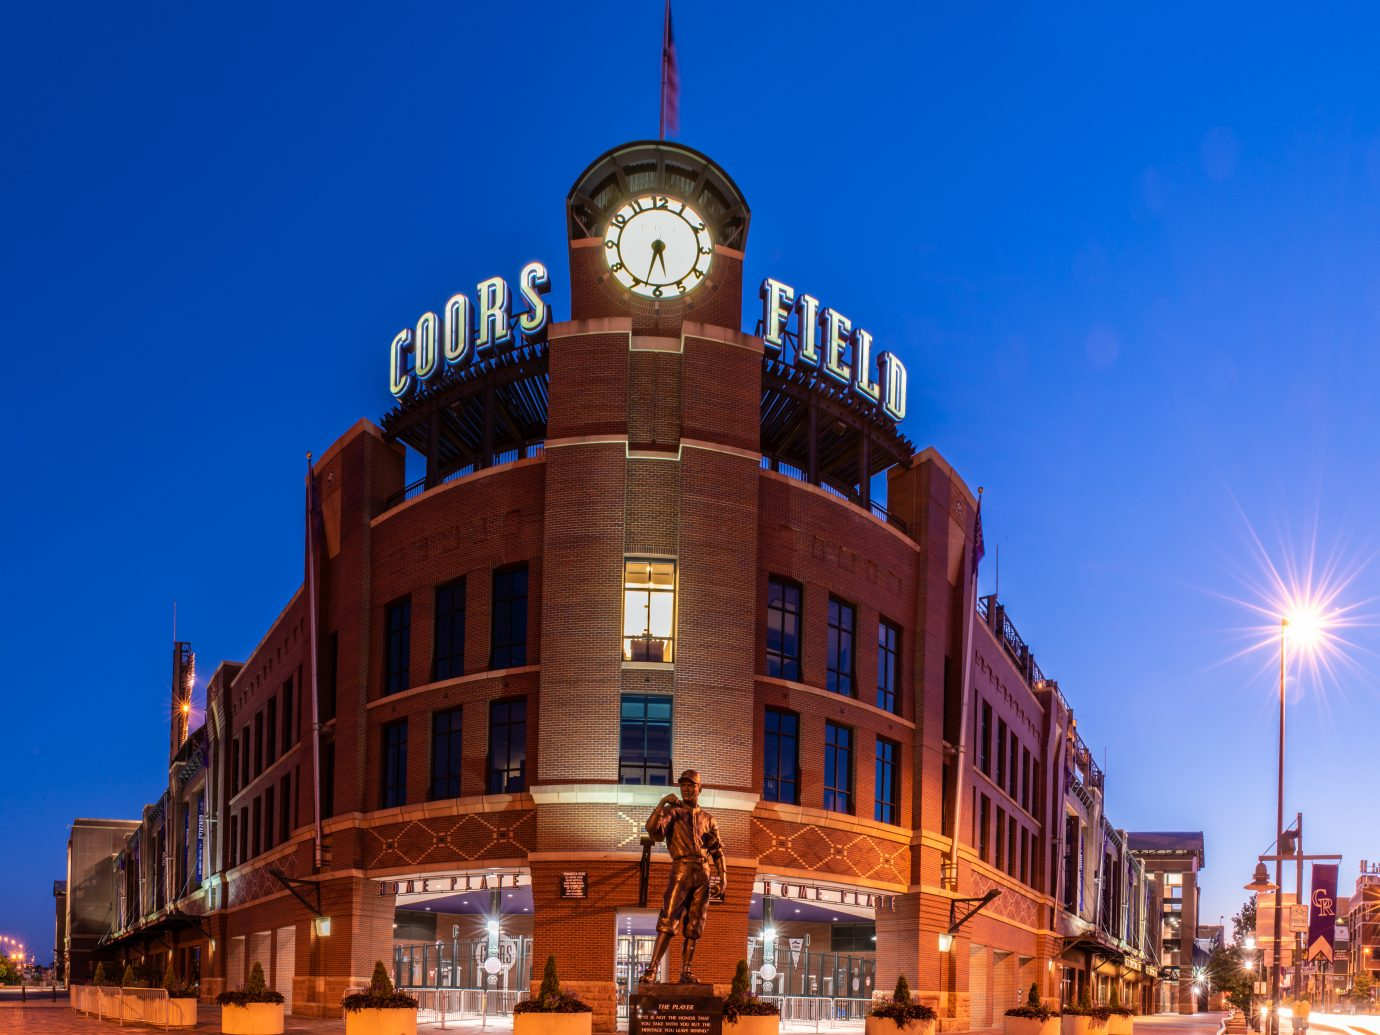 Coors Field, home of the Colorado Rockies baseball team, showing the glowing lights and vintage brick design in the early hours of a summer dawn on August 9, 2018 in Lodo, Denver.